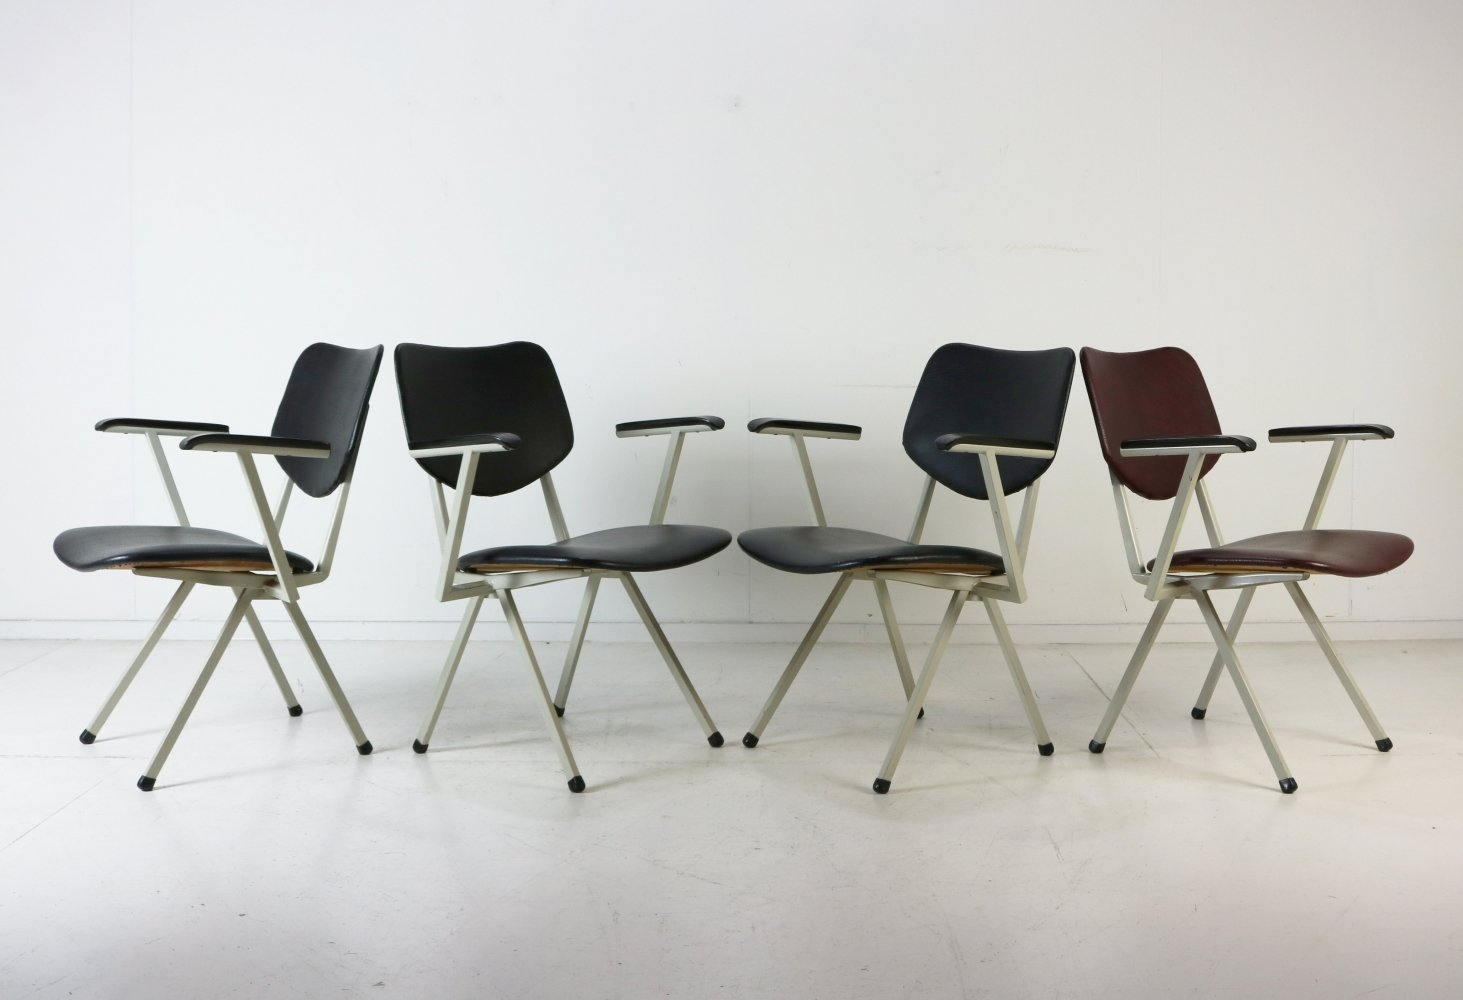 Dutch industrial design low seat arm chairs, 1960s